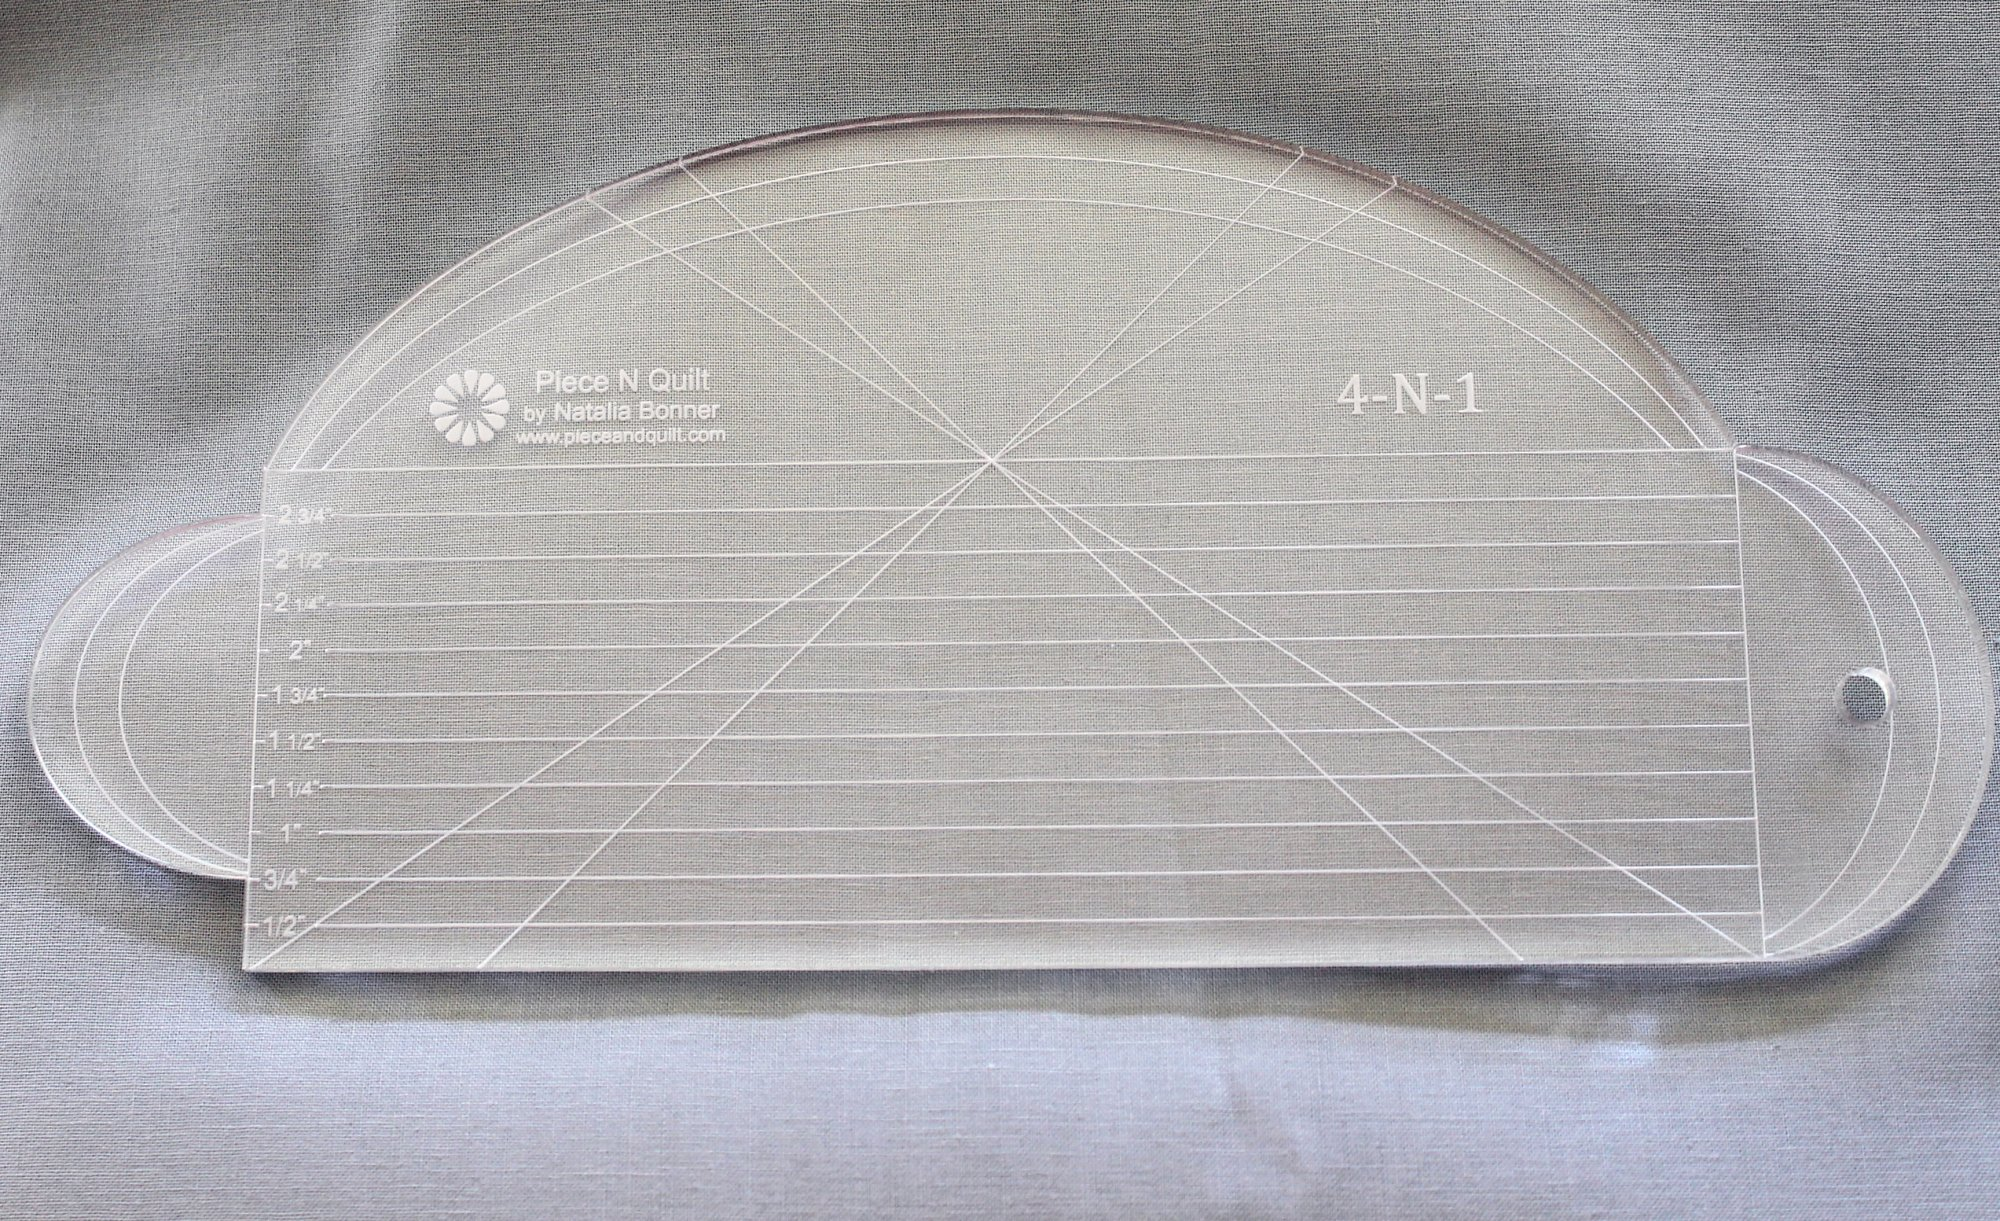 4-N-1 Machine Quilting Ruler